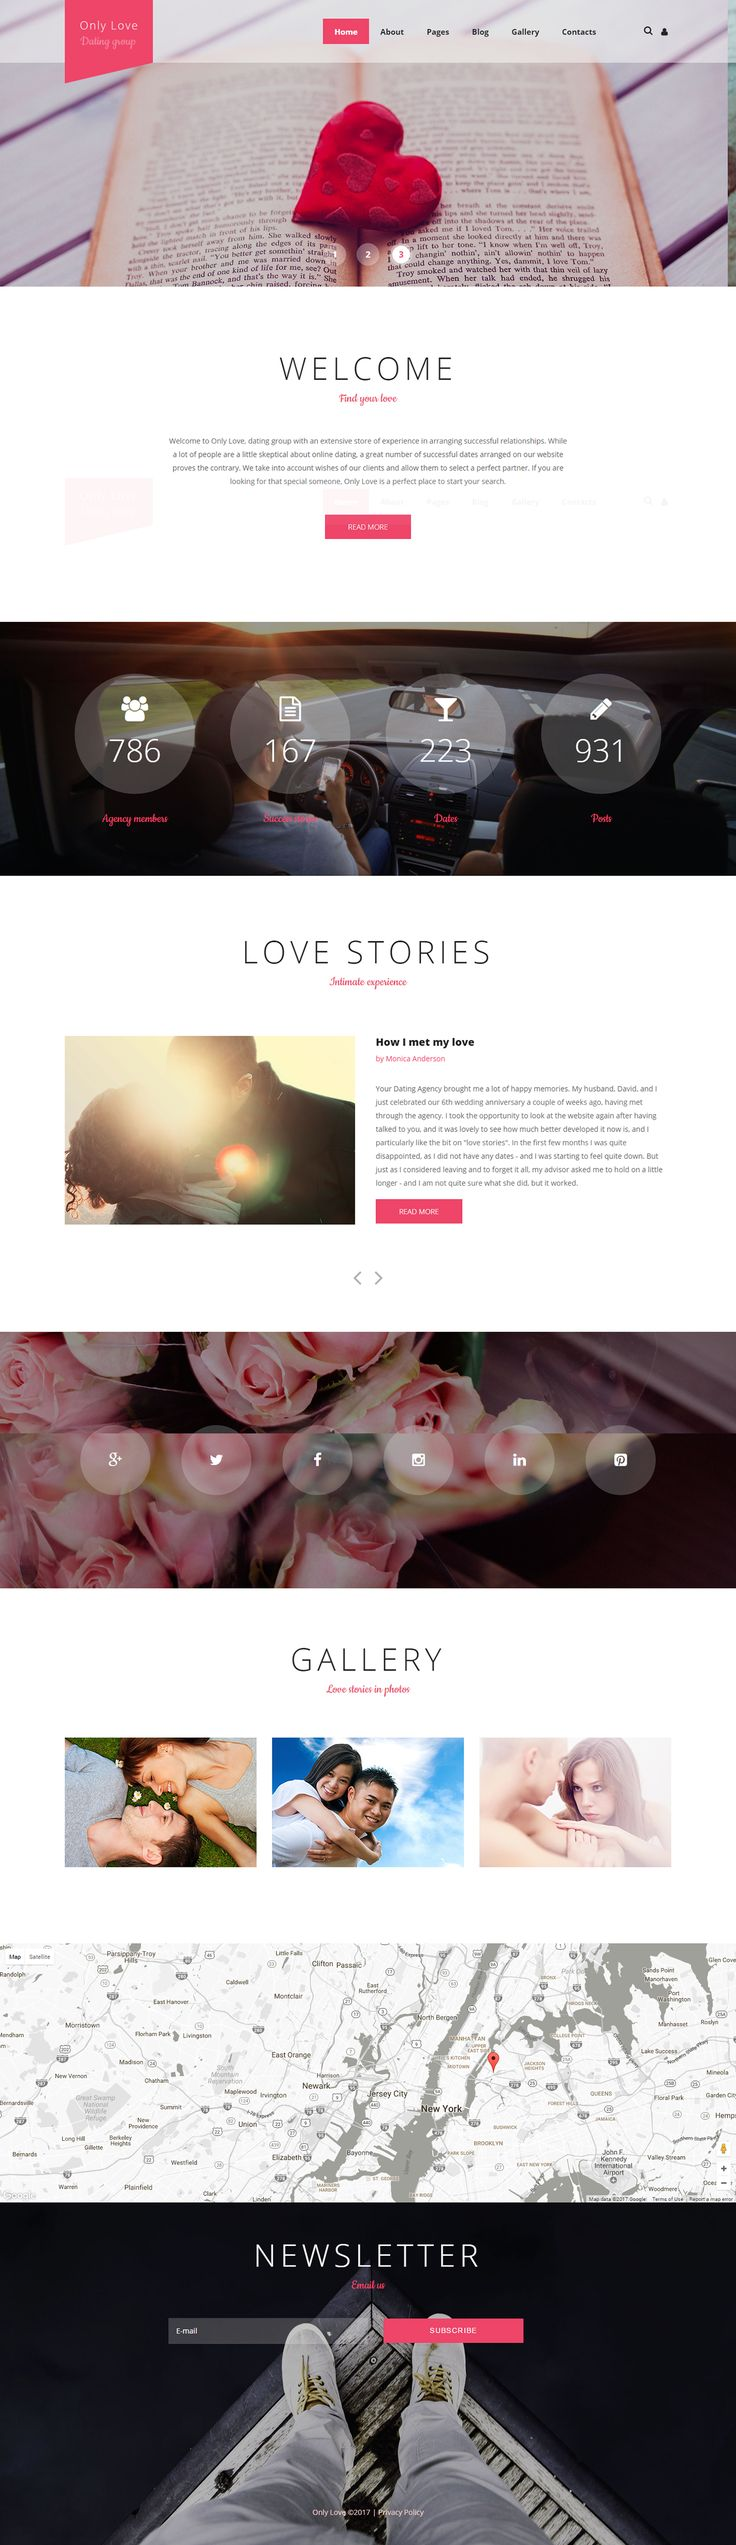 Dating Agency Joomla Template on Behance